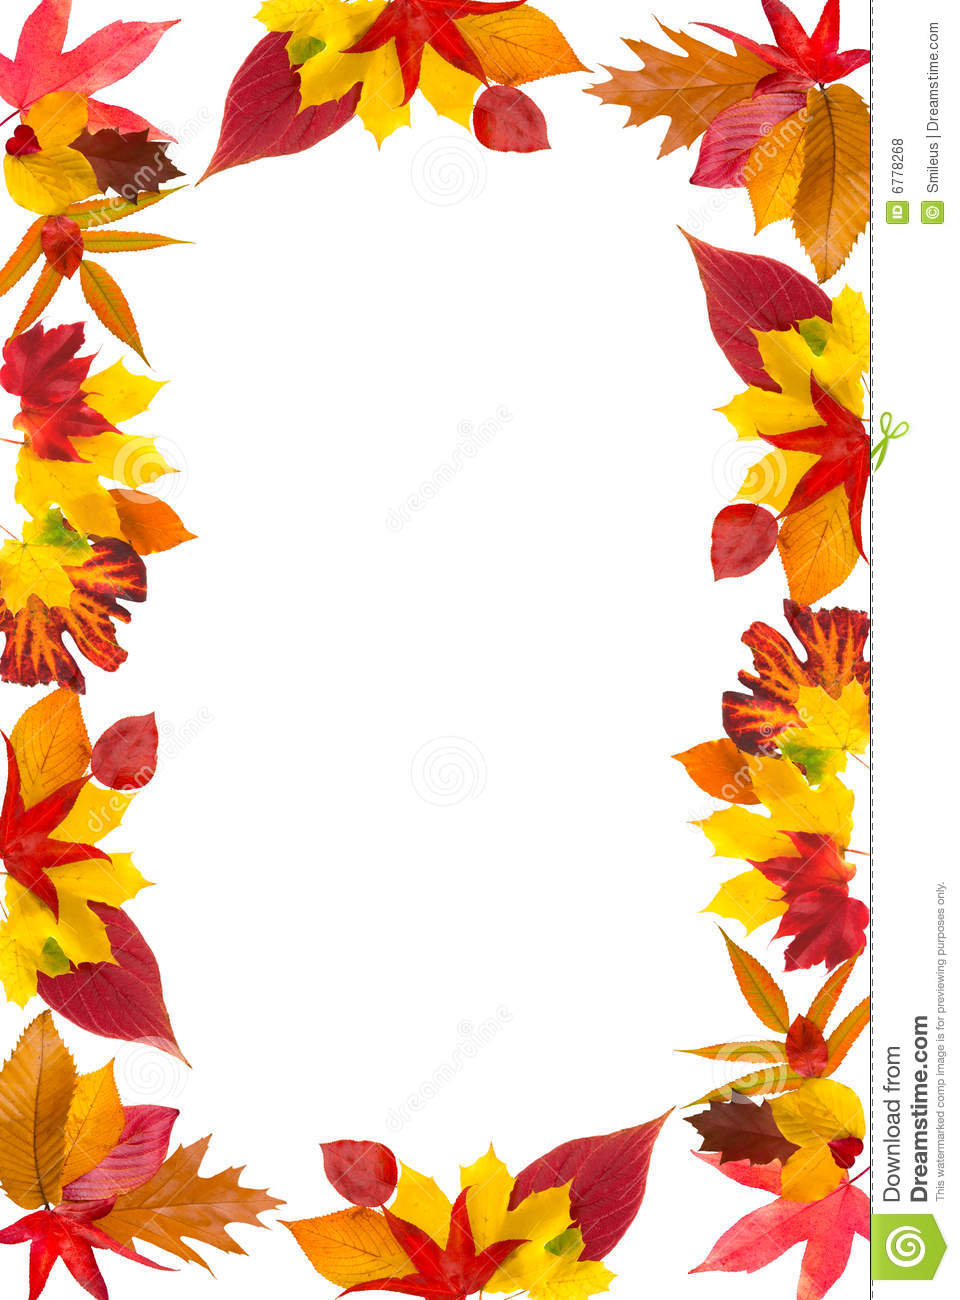 Falling Leaves Wallpaper Free Download Autumn Leaves Border Stock Photo Image Of Maple Life